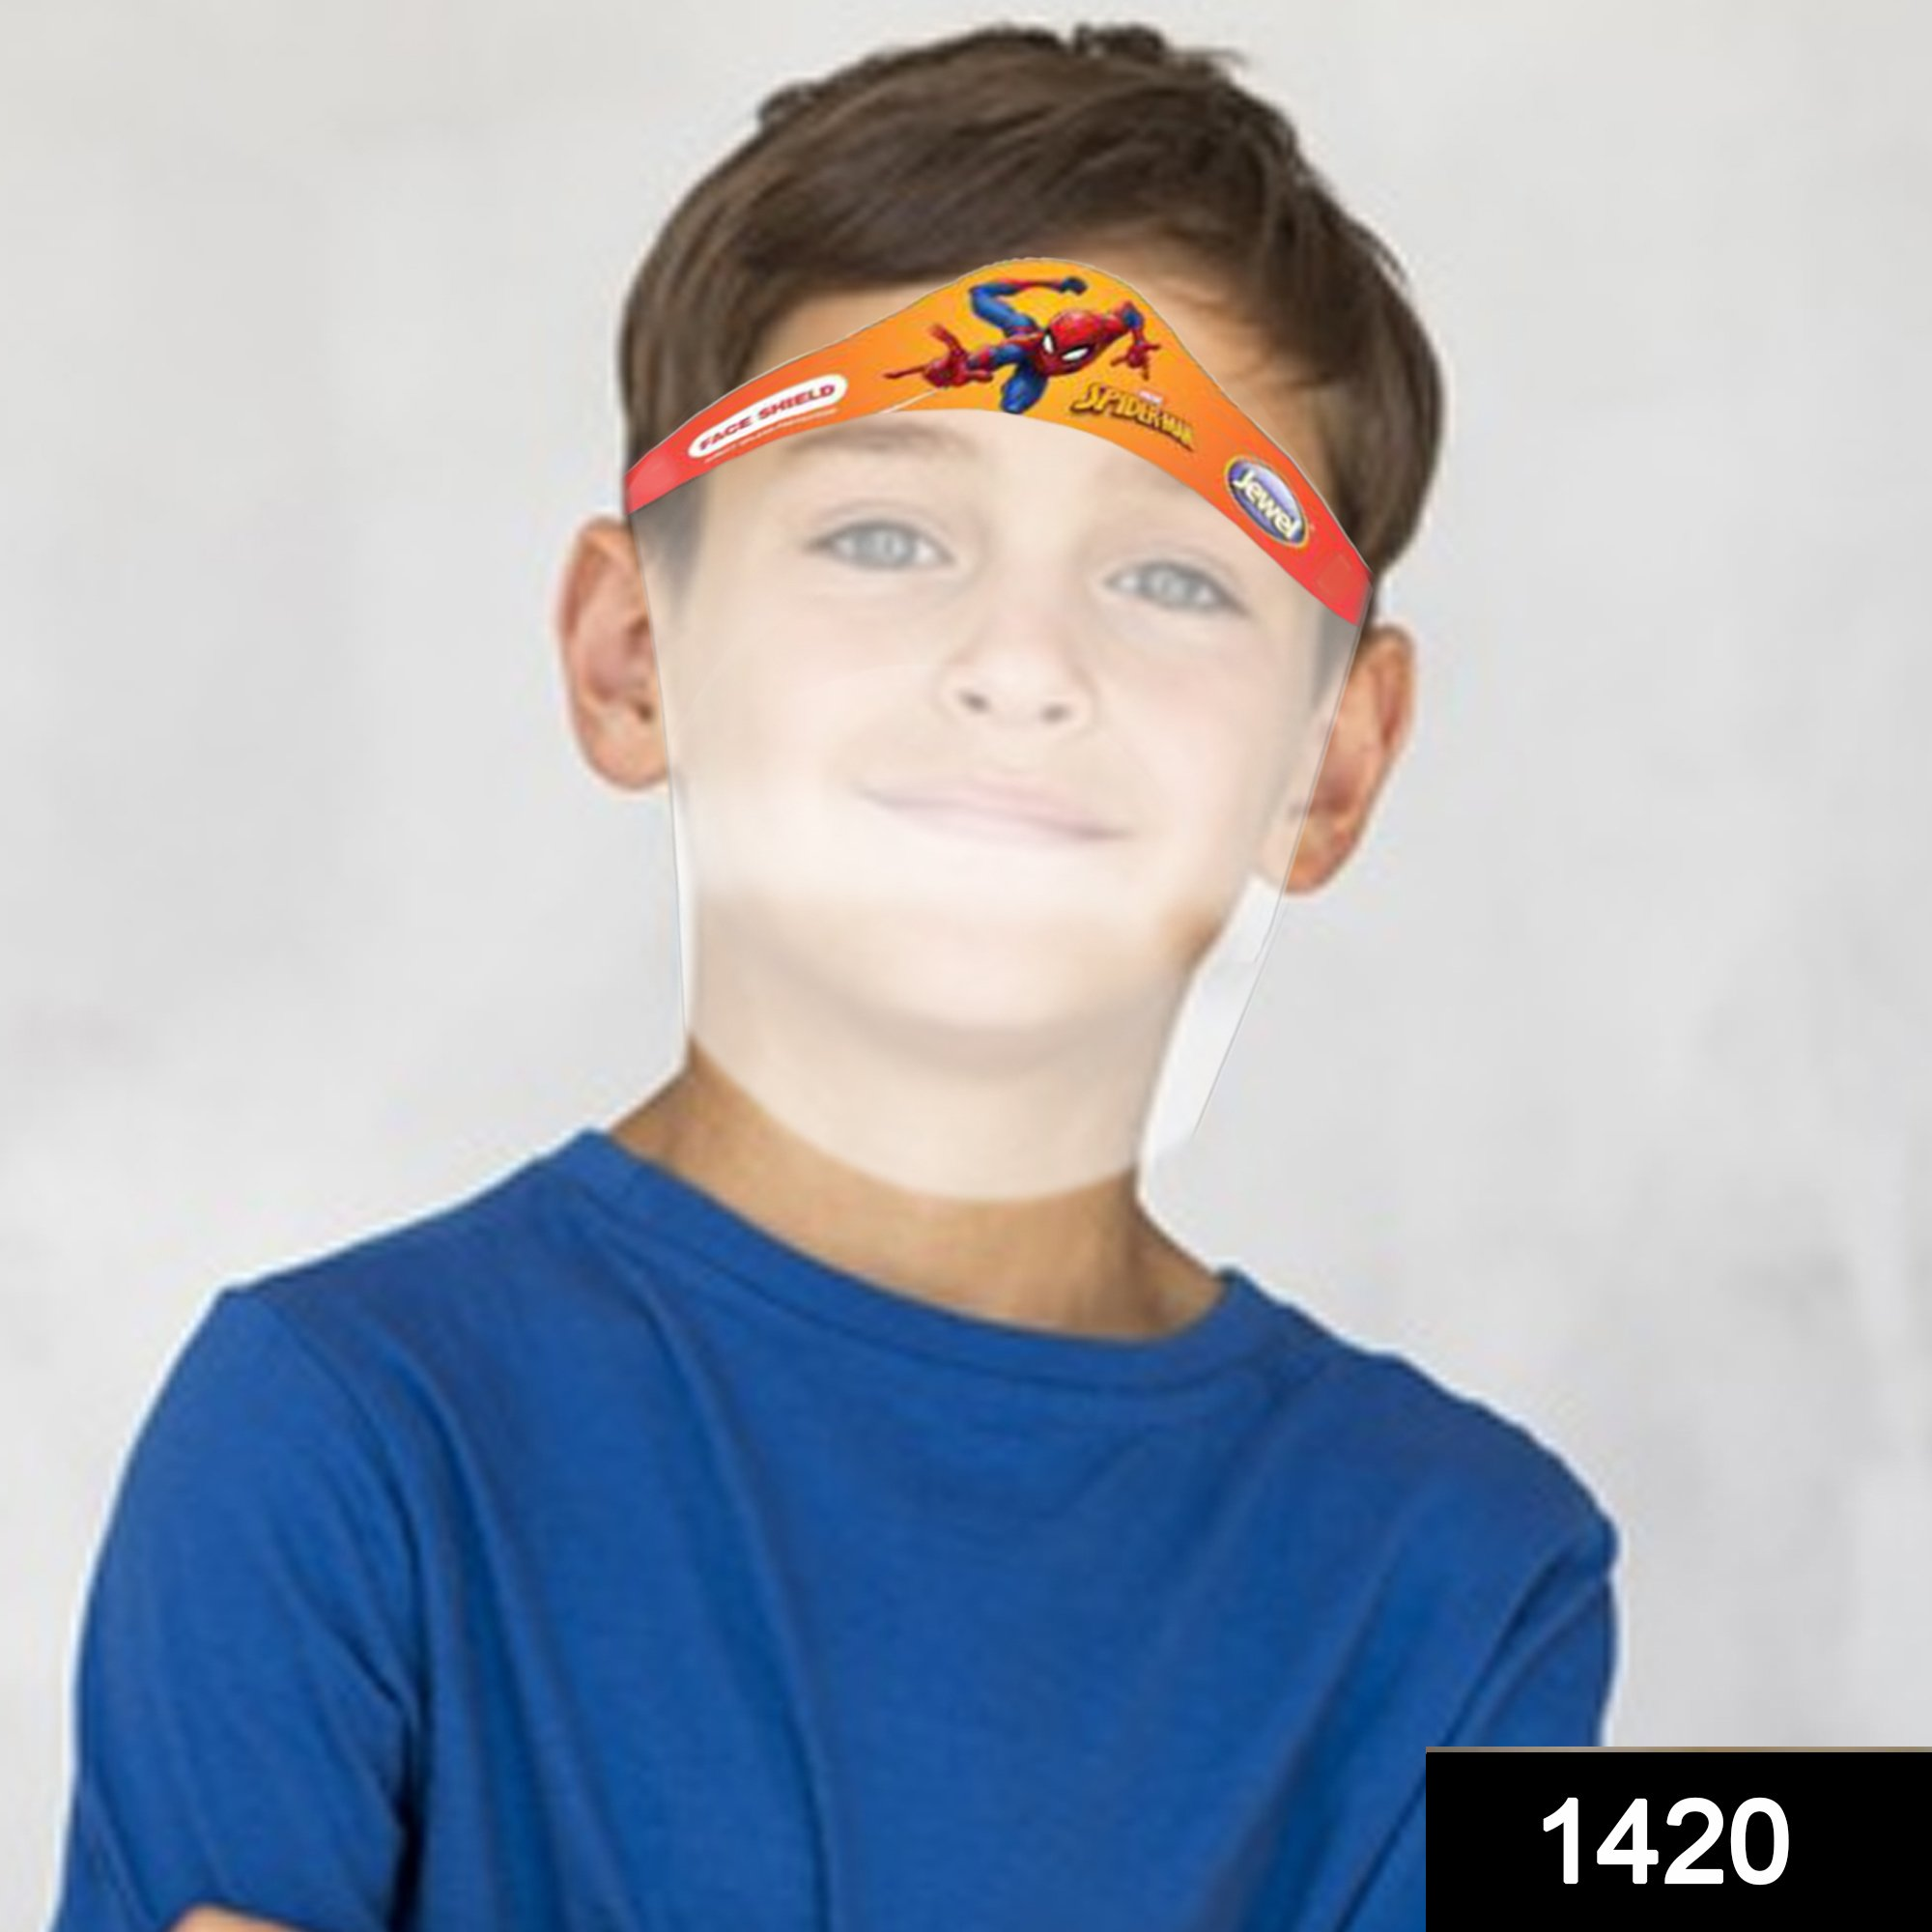 1420 KIDS Face Shield Isolation Mask for Eyes Nose Full Frontal Protection -